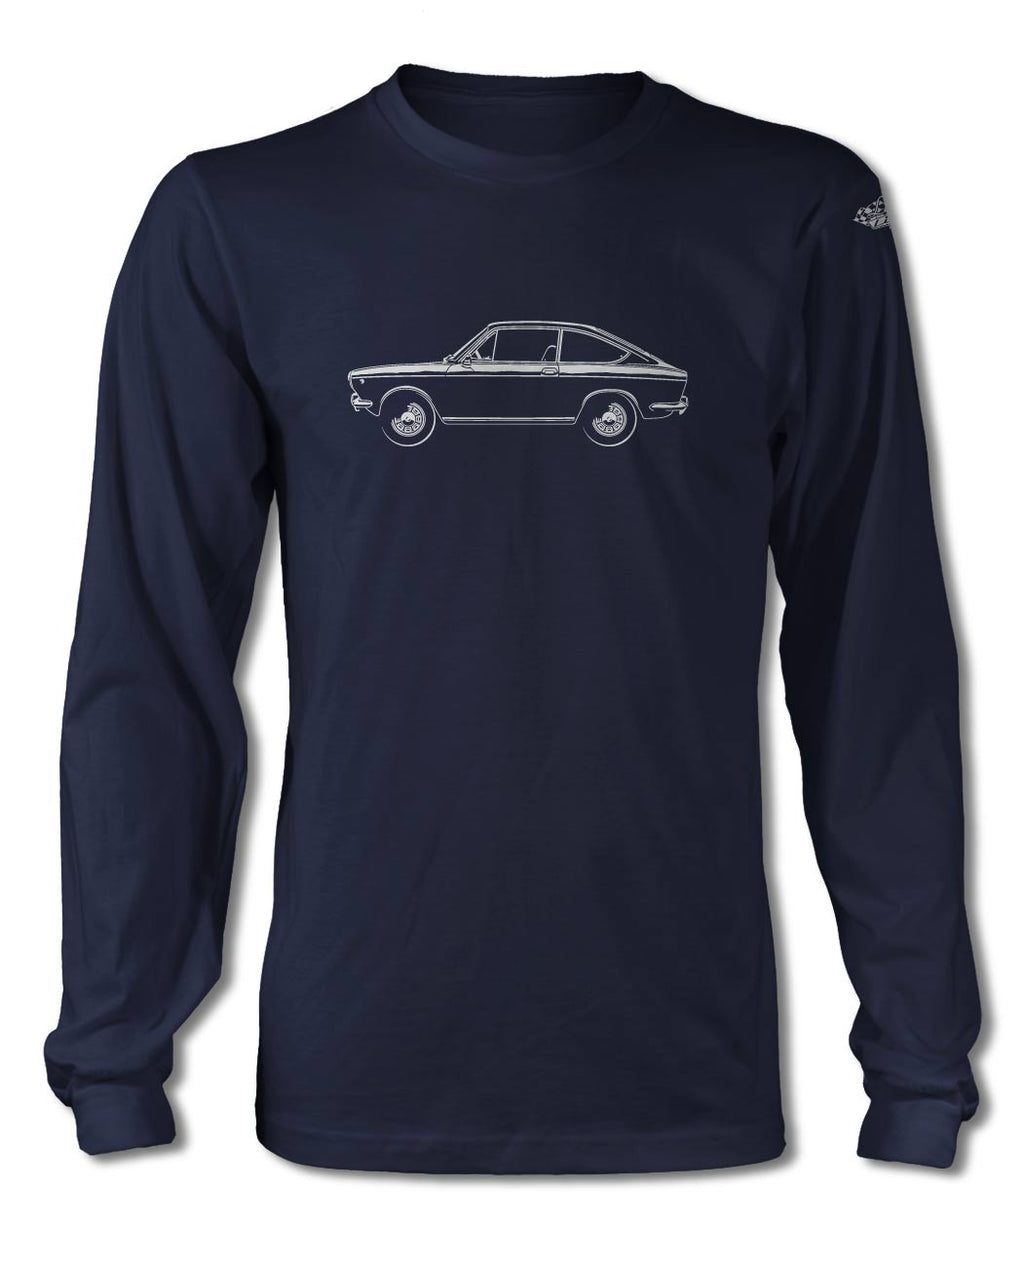 Fiat 850 Coupe Sport T-Shirt - Long Sleeves - Side View